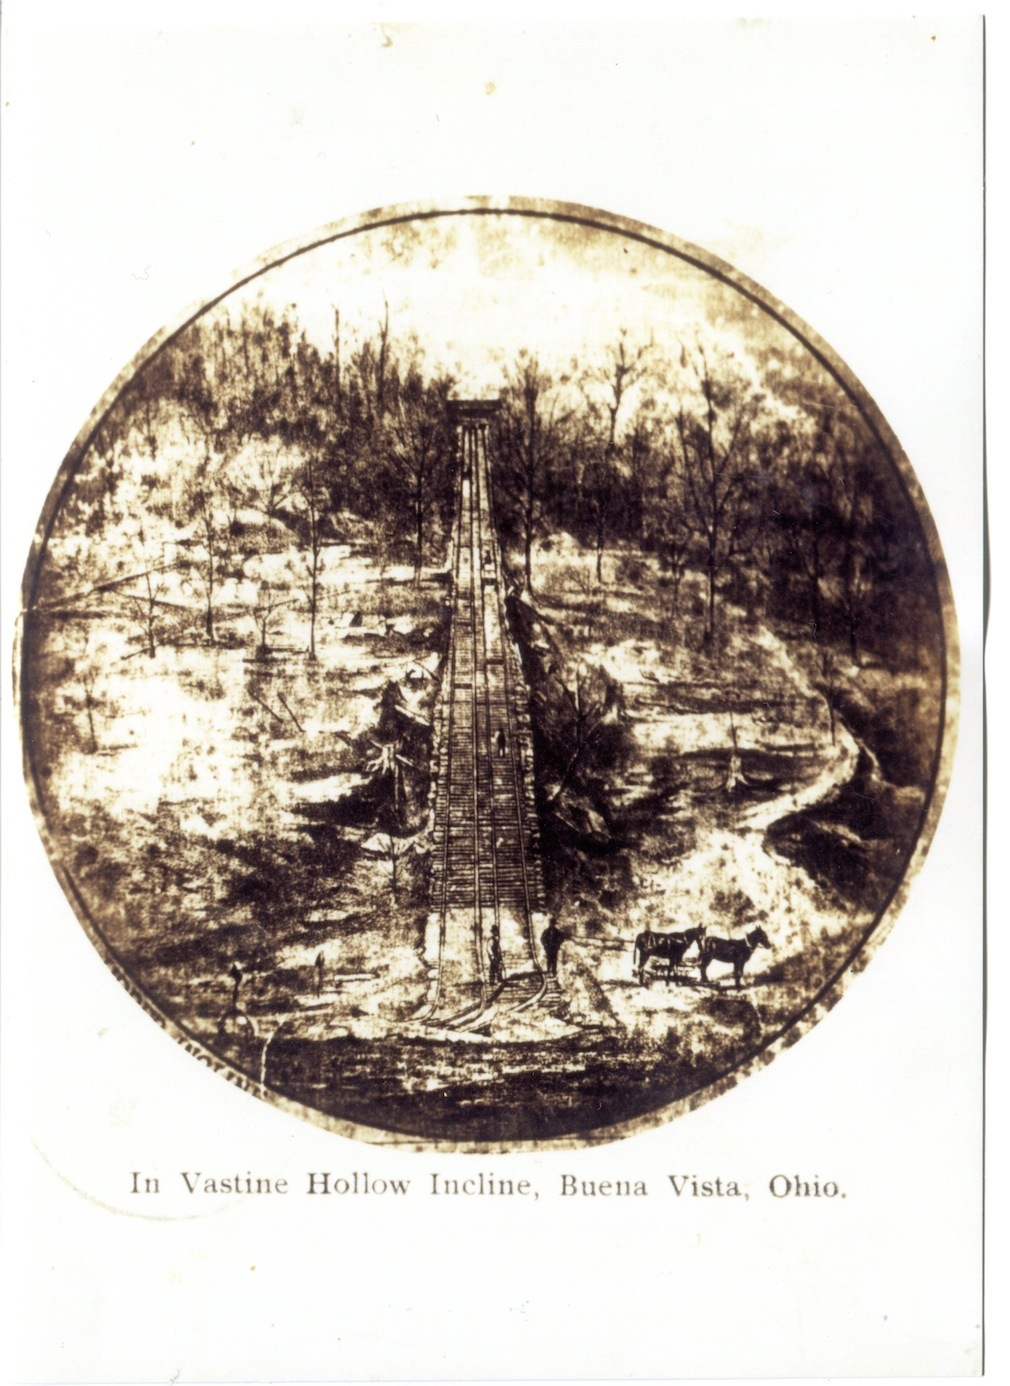 One of three inclines that once operated in Vastine Hollow, bringing quarried stone down from the ridge-side benches to the tram road, upon which the stone was then transported to Buena Vista and the Ohio River.